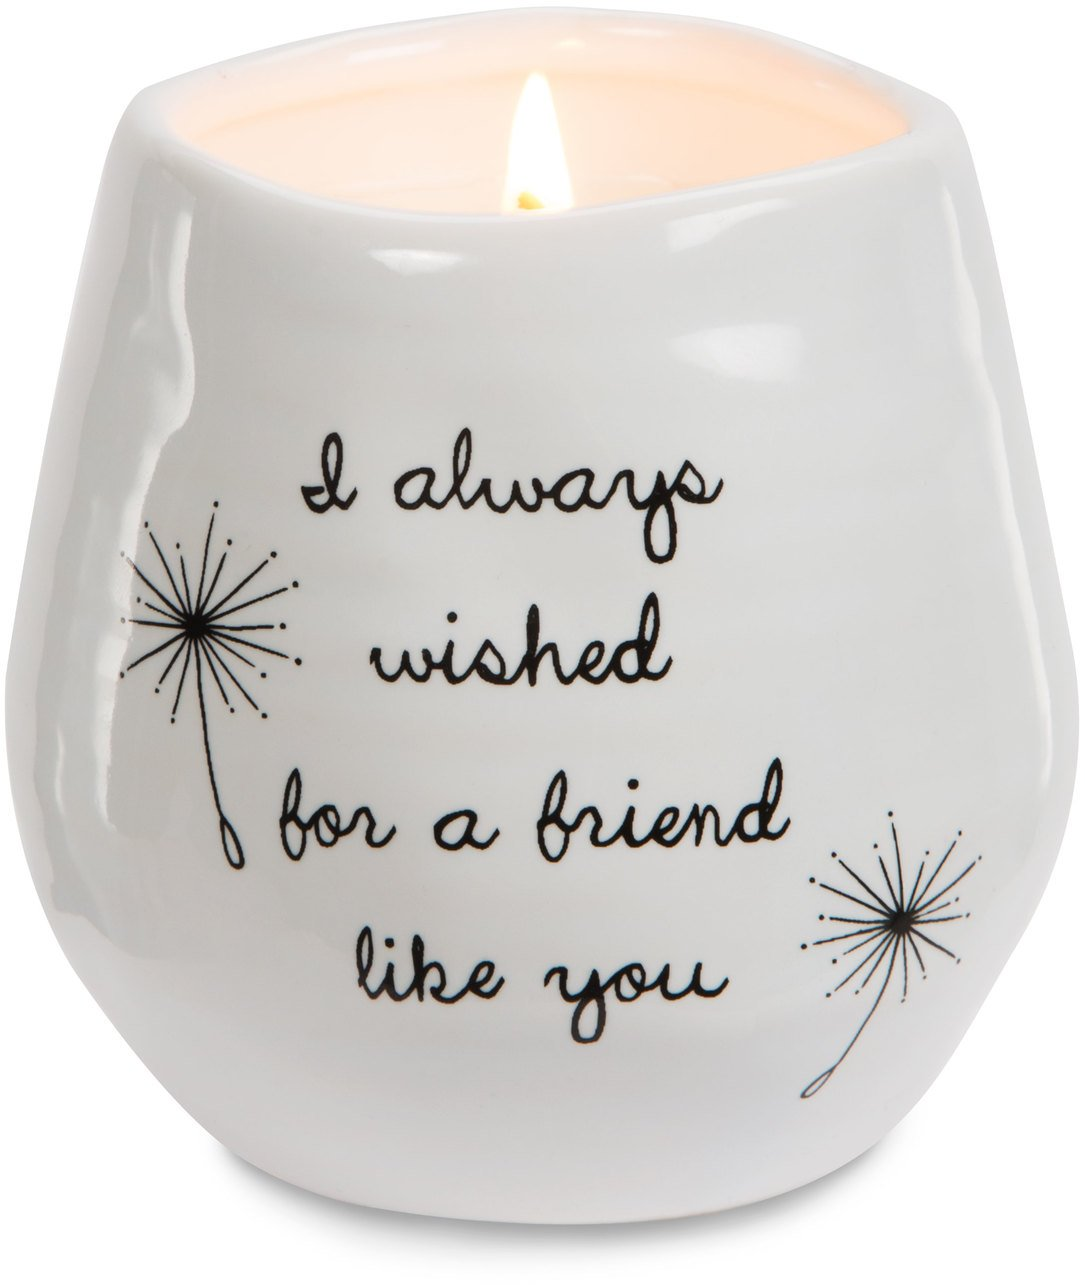 Pavilion Gift Company Plain Dandelion Always Wished for a Friend Like You White Ceramic Soy Serenity Scented Candle